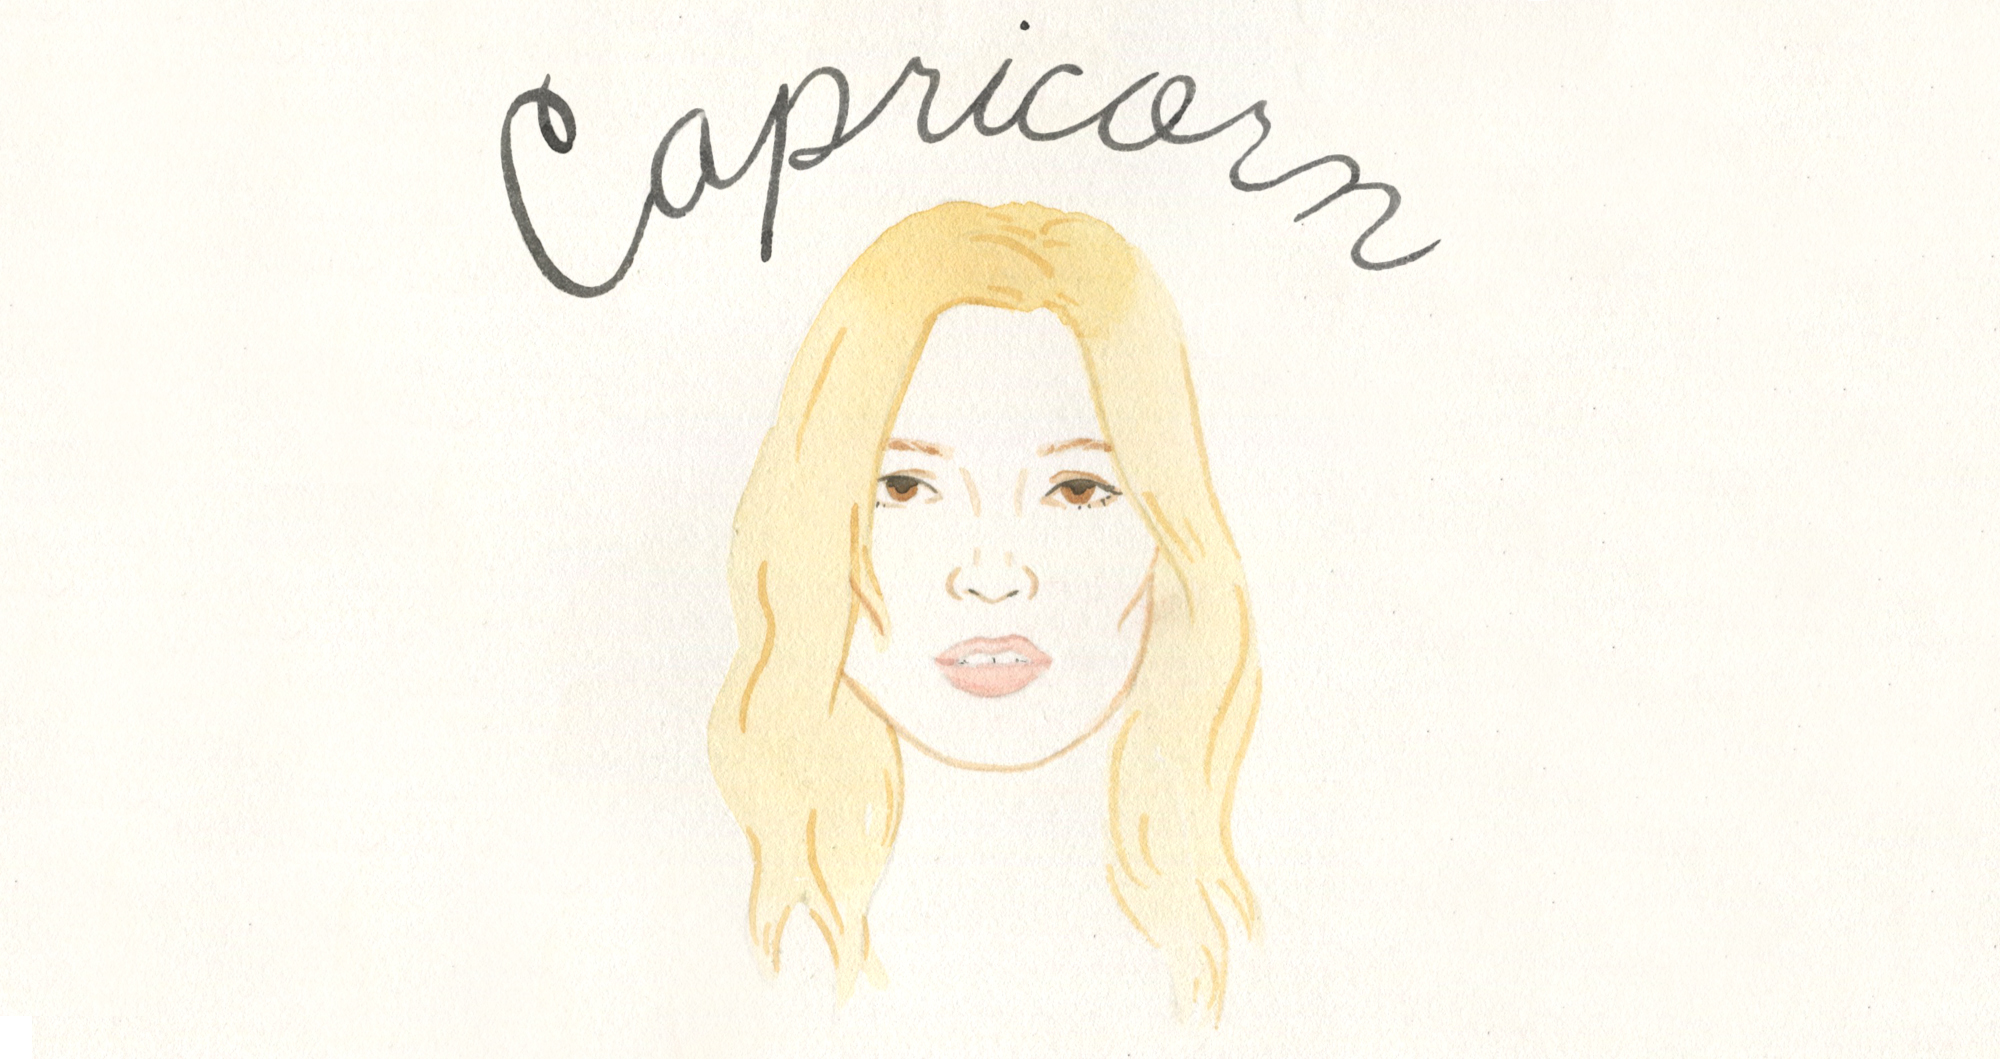 Astrology Gift Giving: Capricorn - The